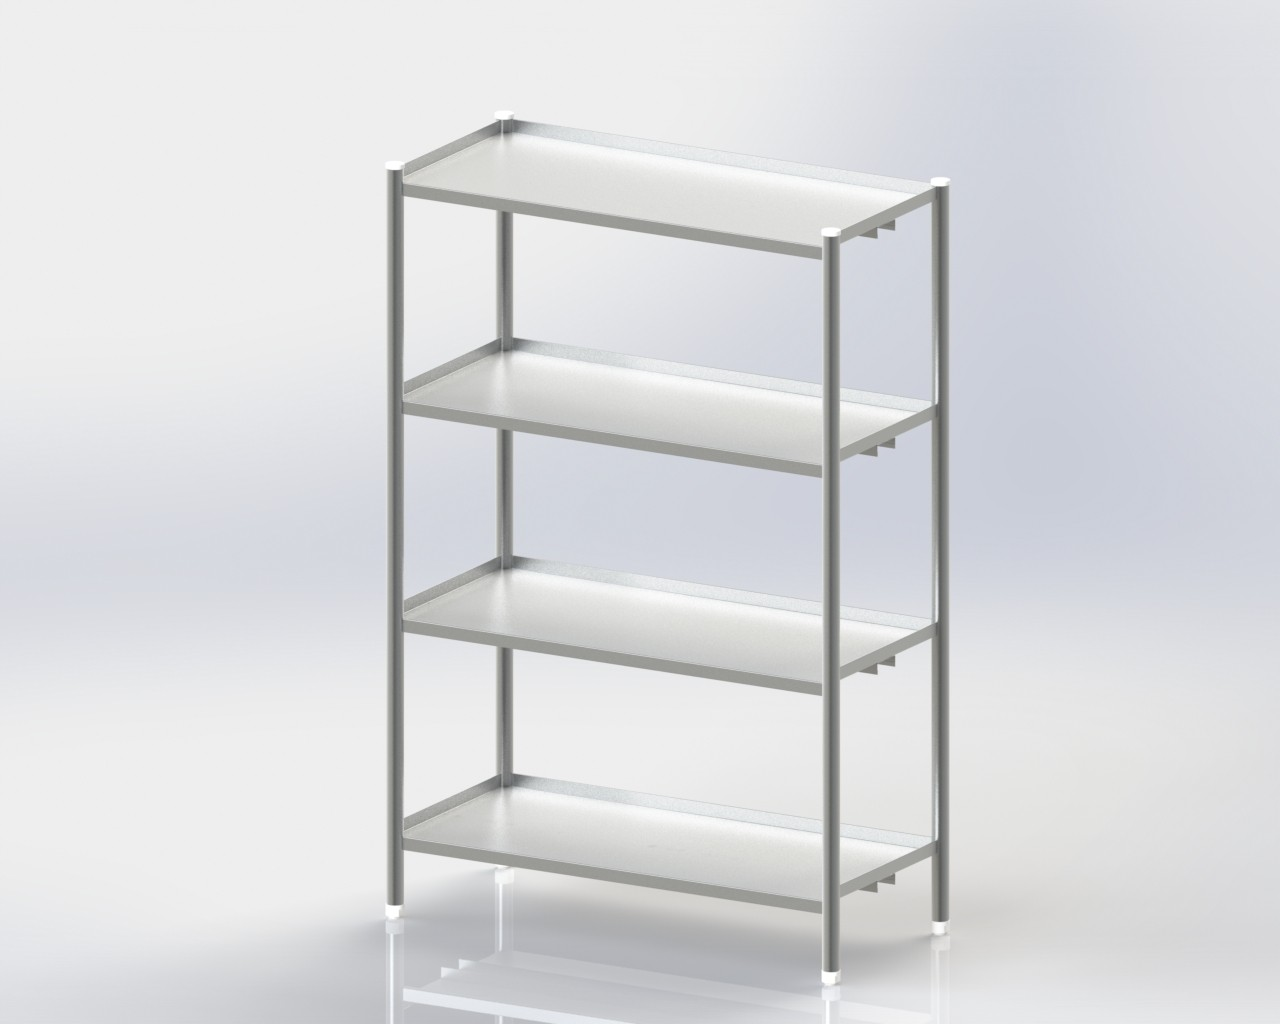 4 Storage Shelves / Standard / Mobile